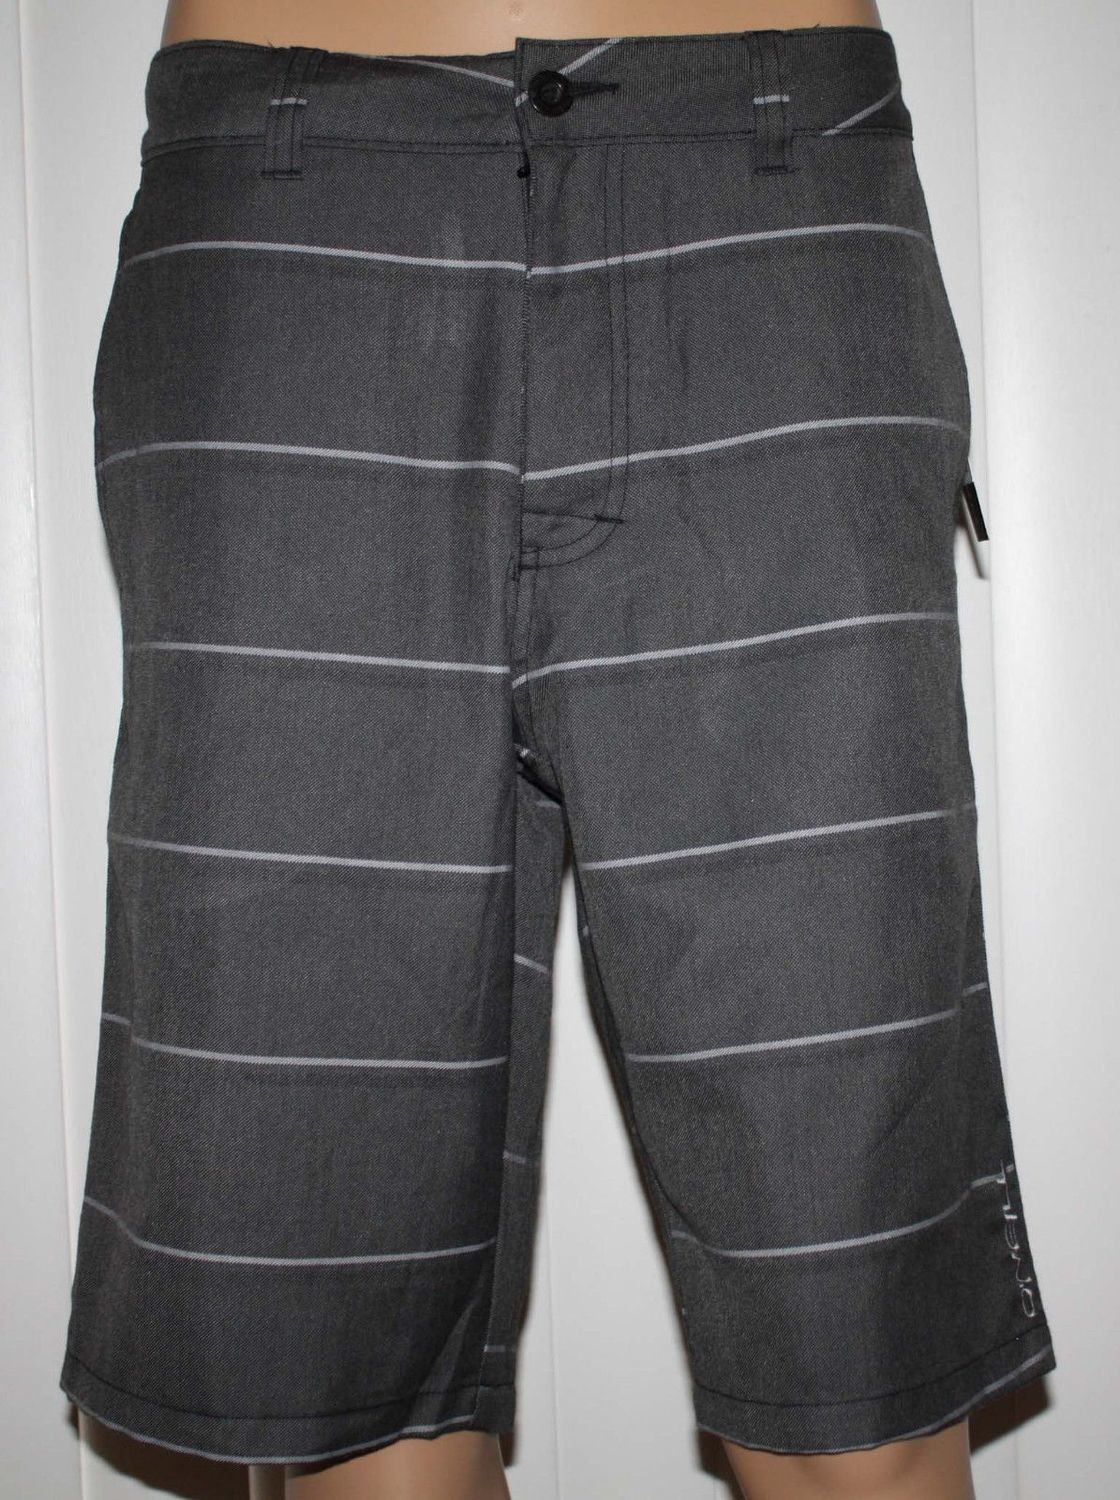 O'Neill REDWOOD Men's Black Textured/Light Gray/Black Stripes Shorts (Several Sizes)